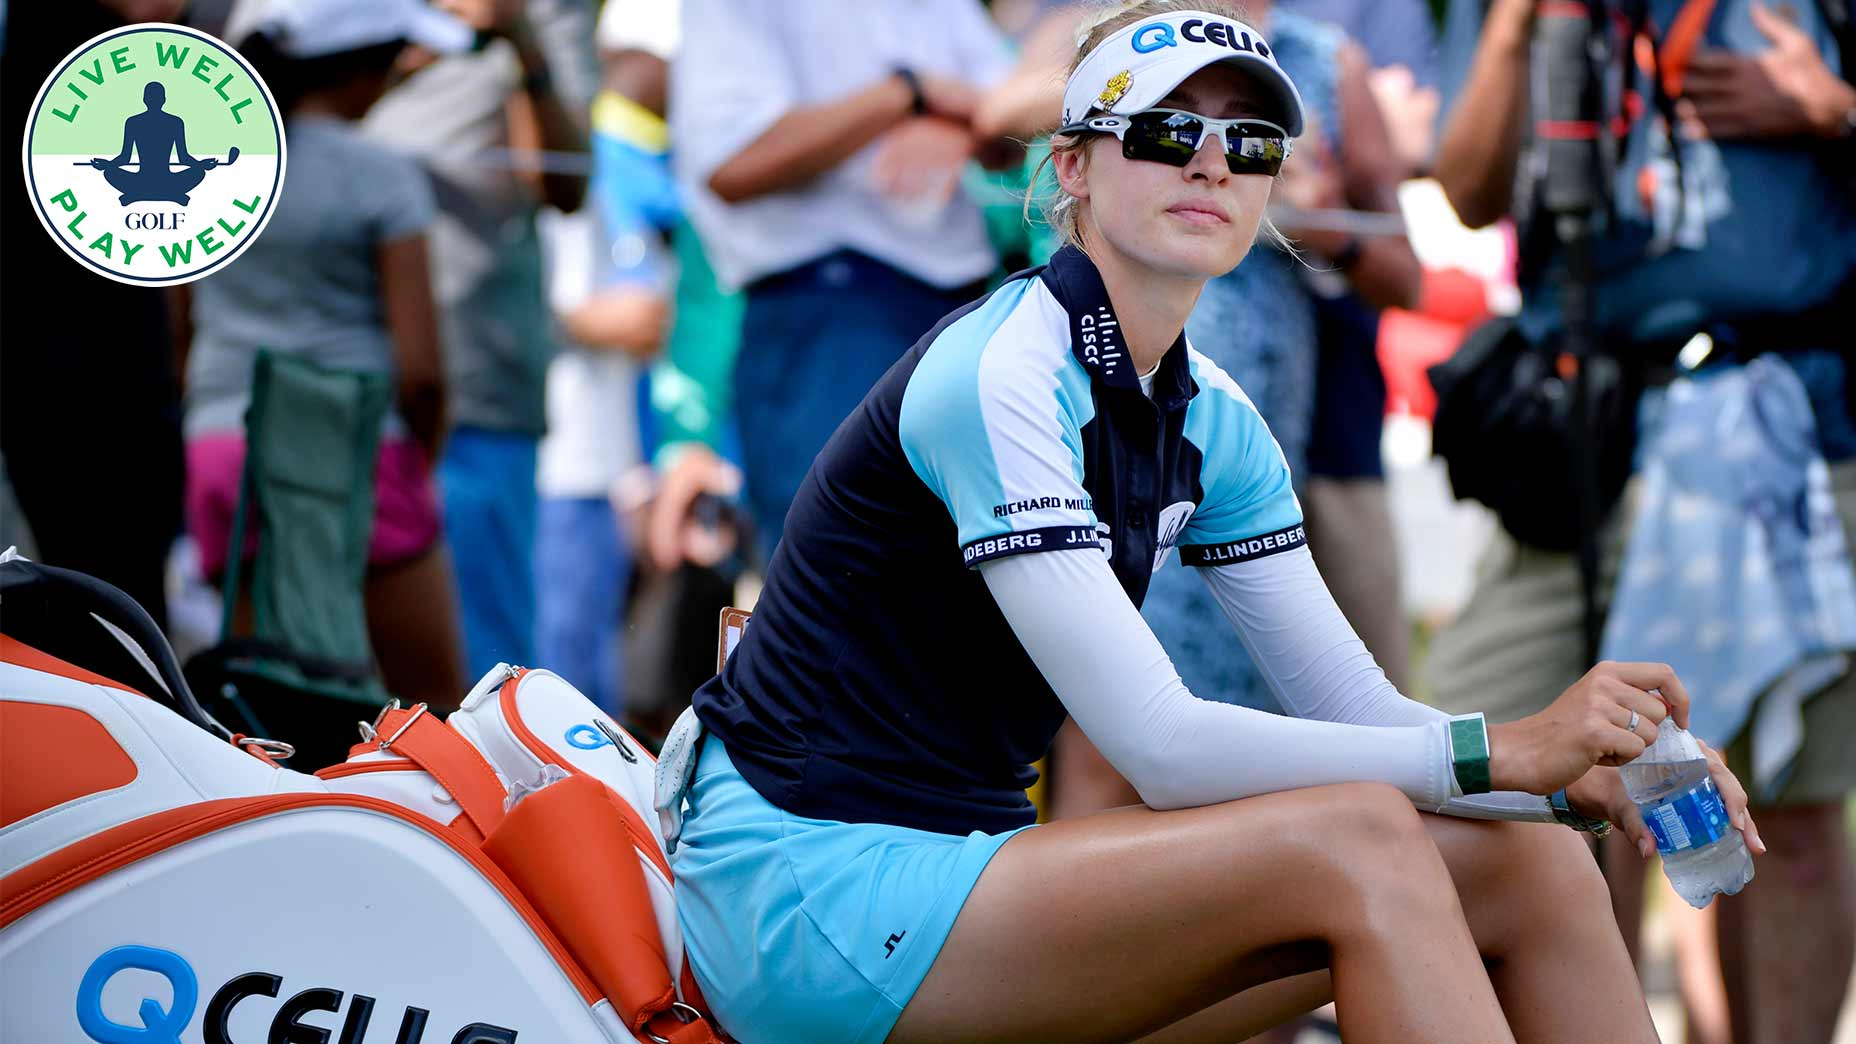 Nelly Korda looked unbothered waiting on the 16th tee despite making a stressful double bogey on No. 15.